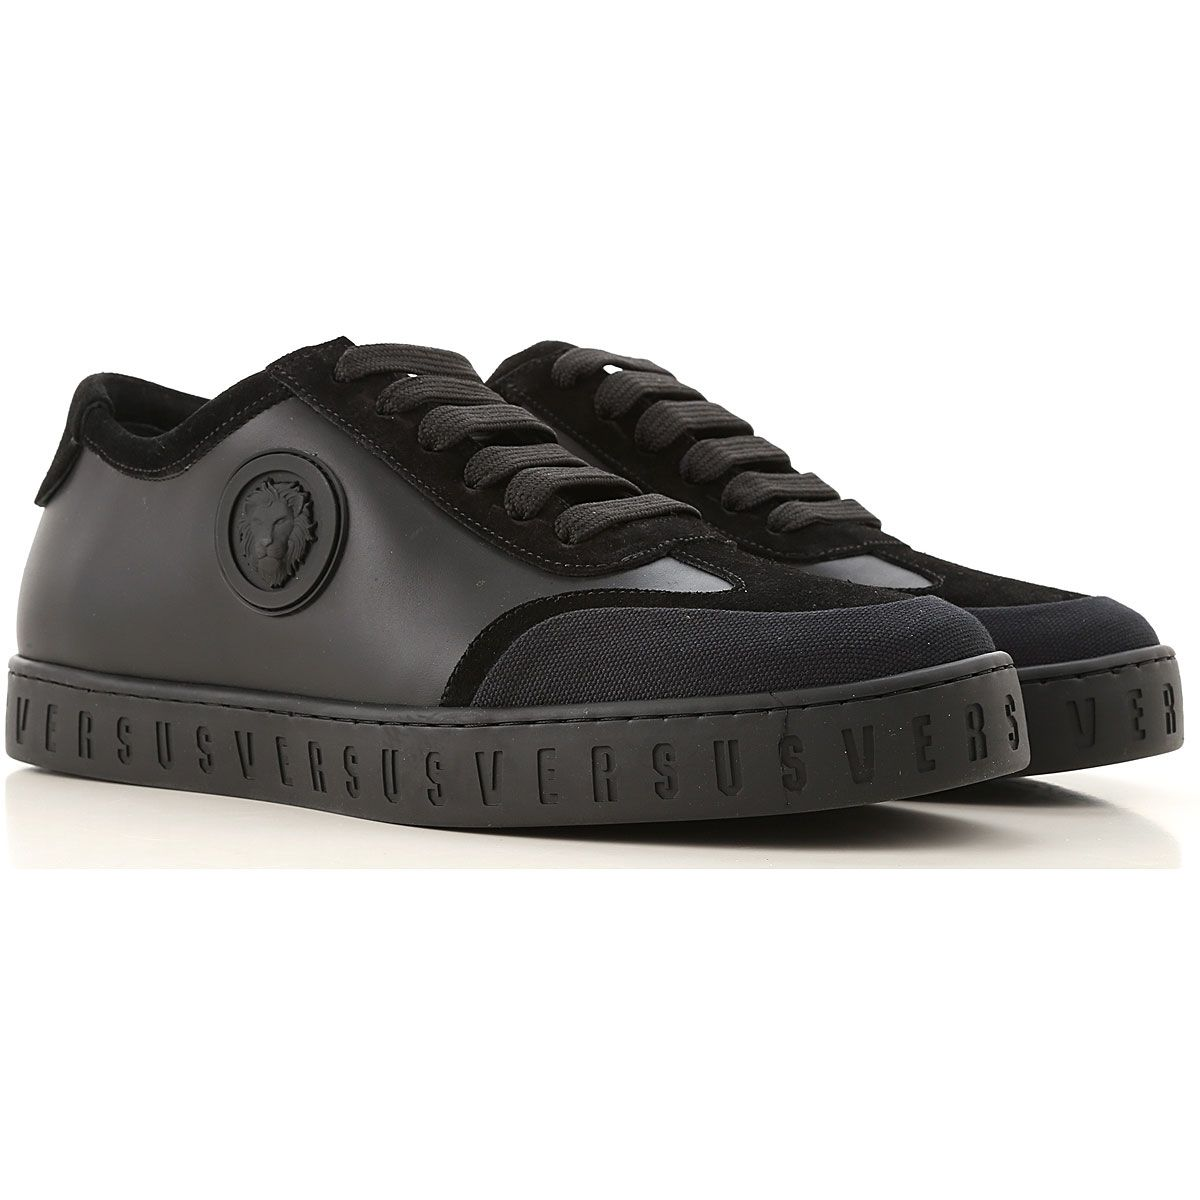 VERSACE Chaussures Homme #Shoes #Men #Style #Luxury #Fashion